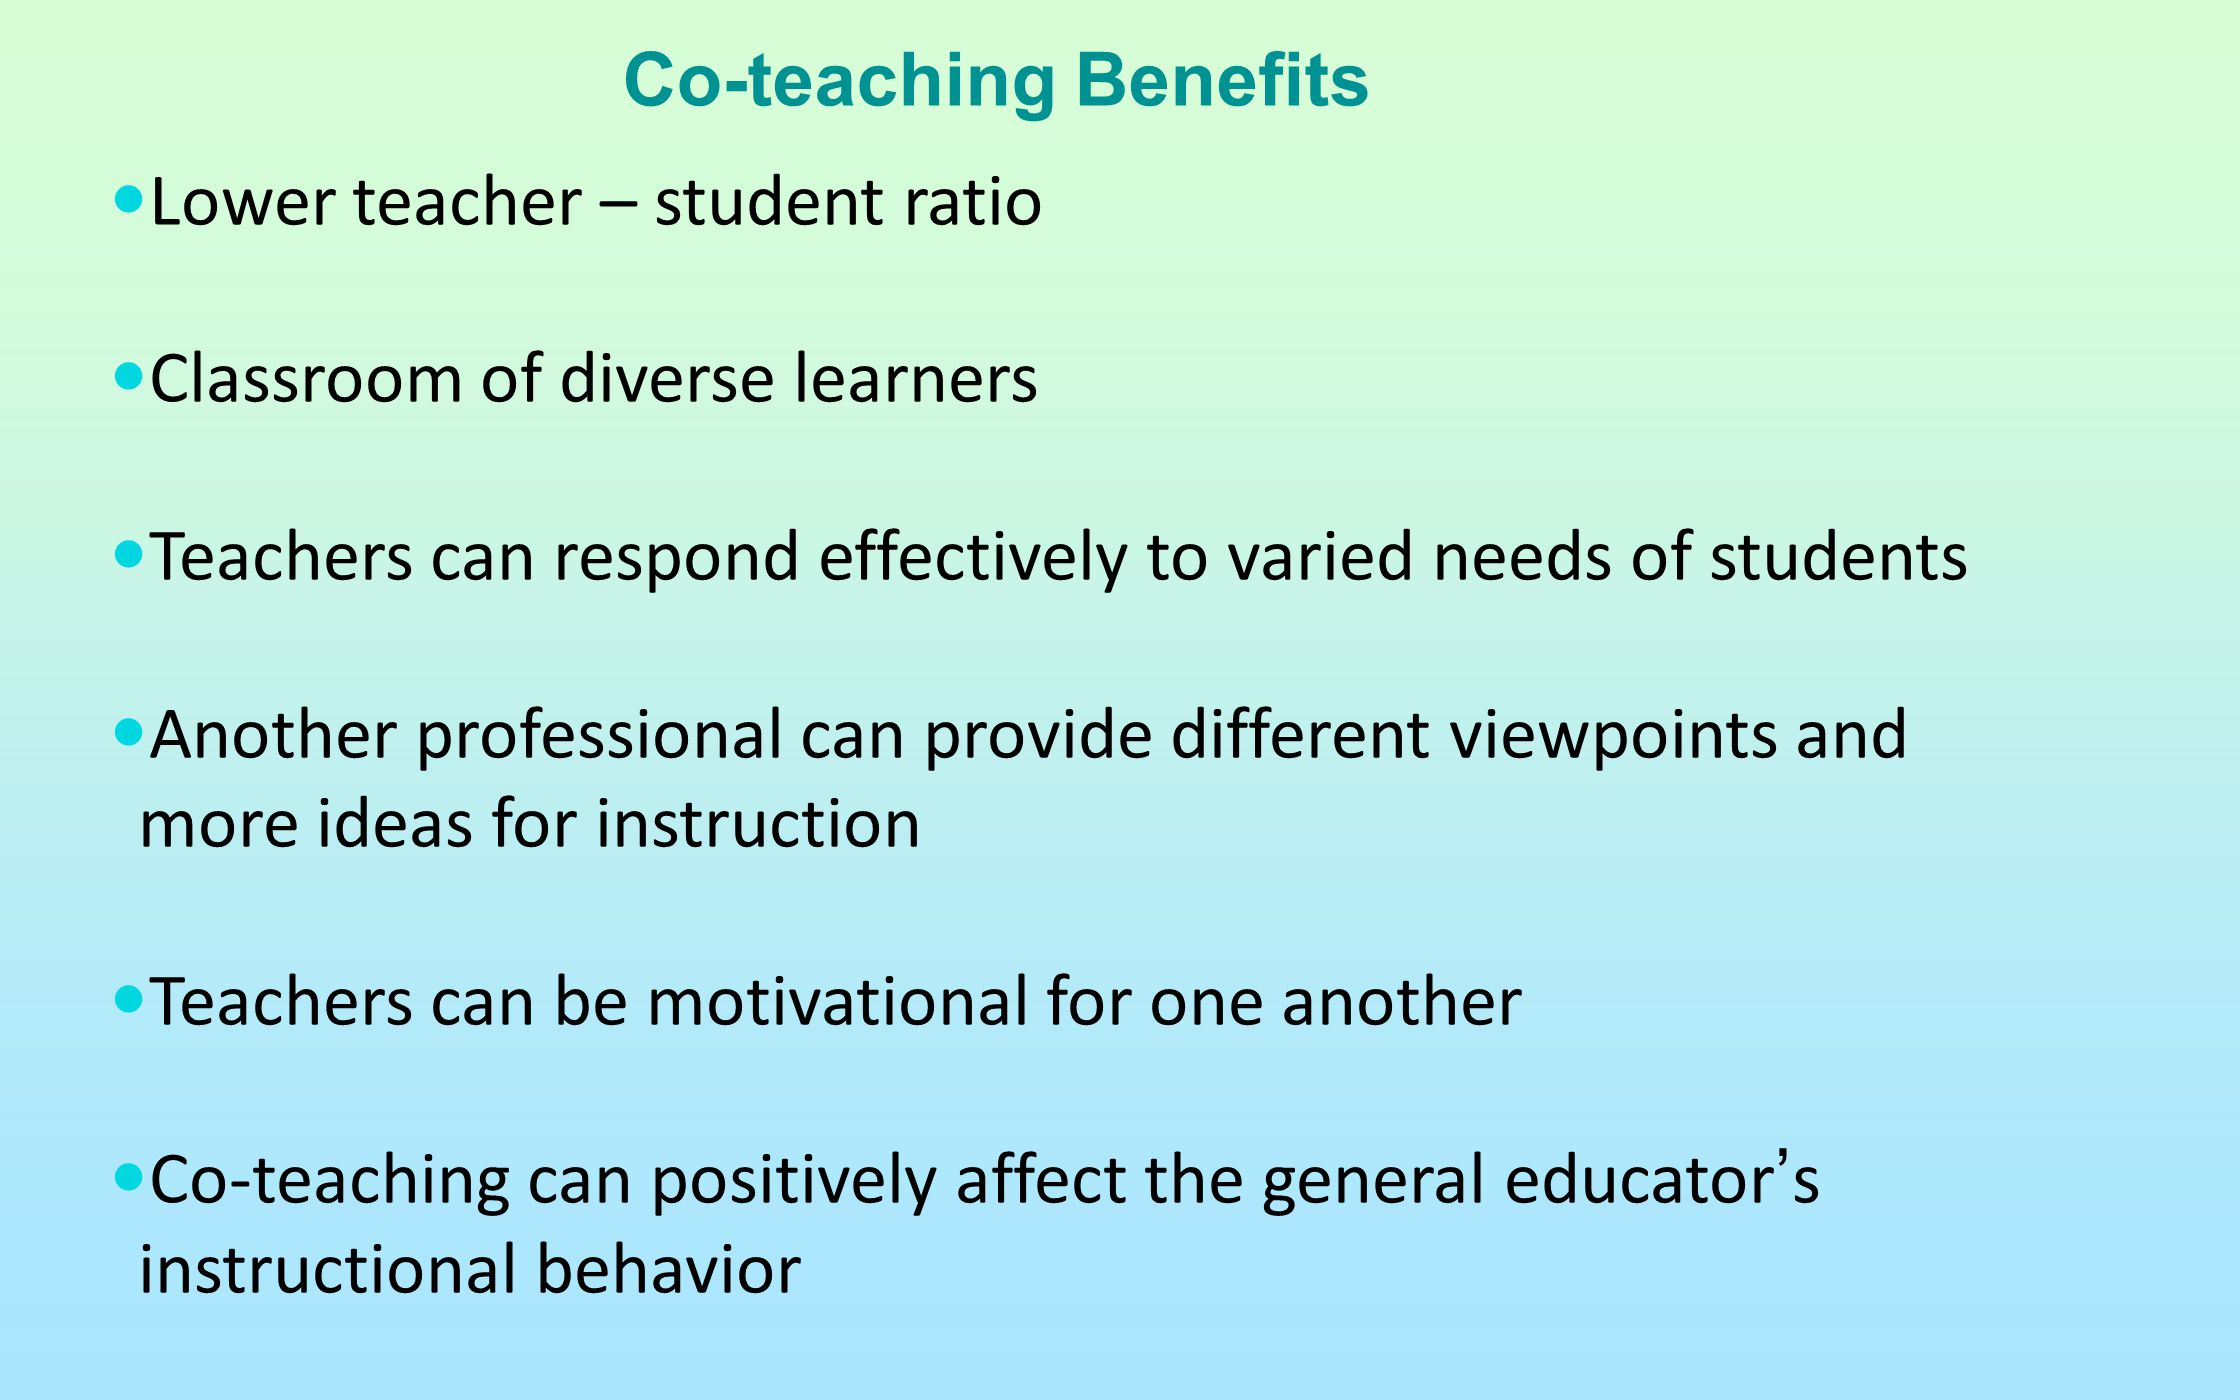 Co-teaching Benefits Lower teacher – student ratio. Classroom of diverse learners. Teachers can respond effectively to varied needs of students.